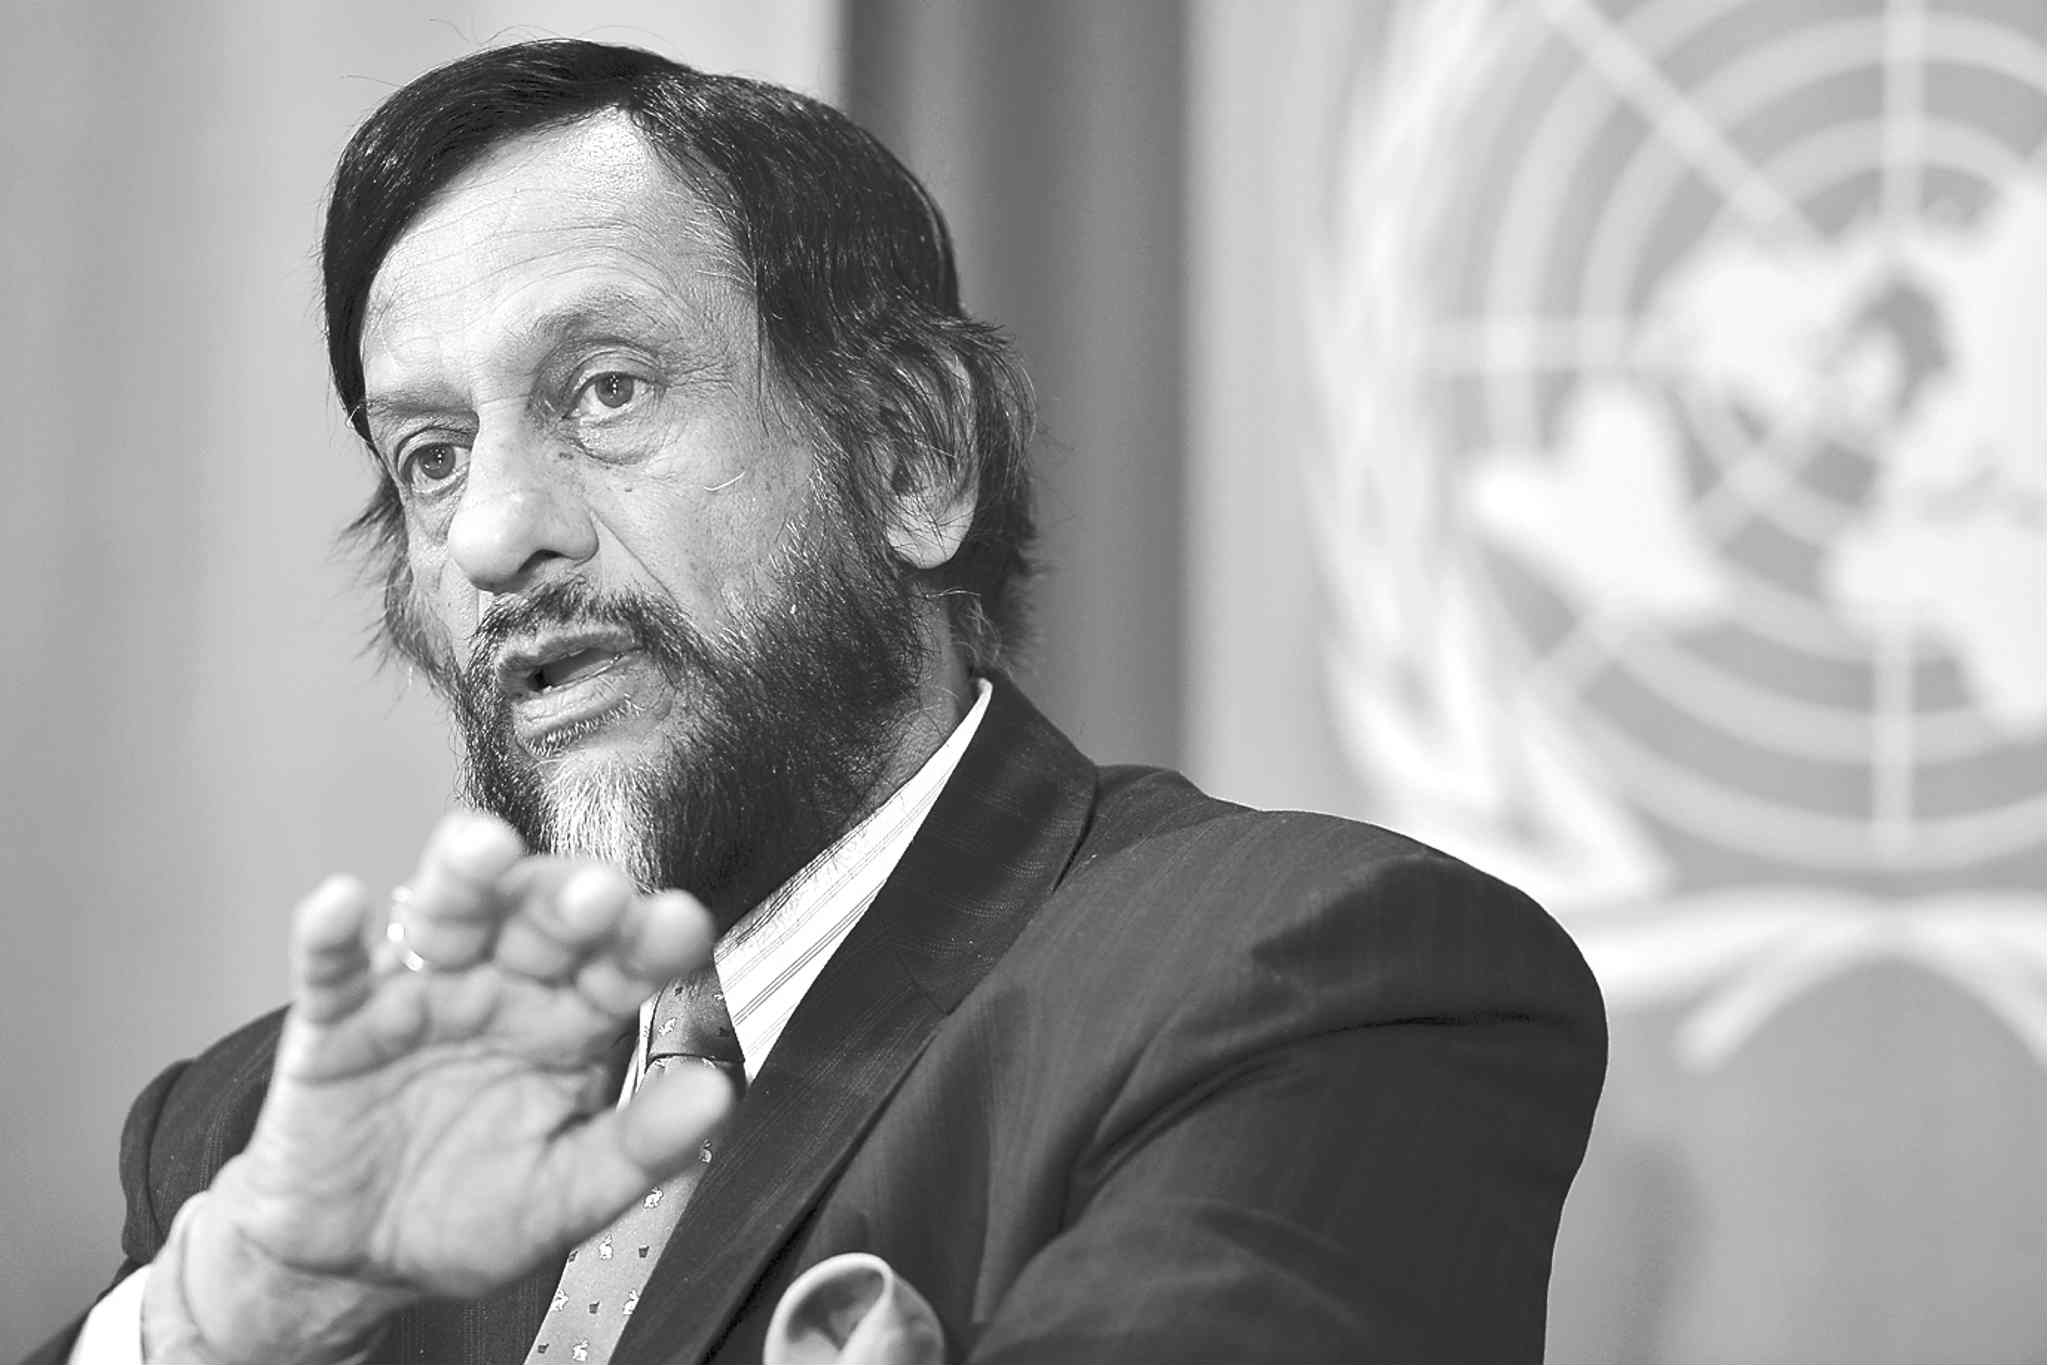 Rajendra Kumar Pachauri, chairman of the intergovernmental panel on climate change, briefs the media.